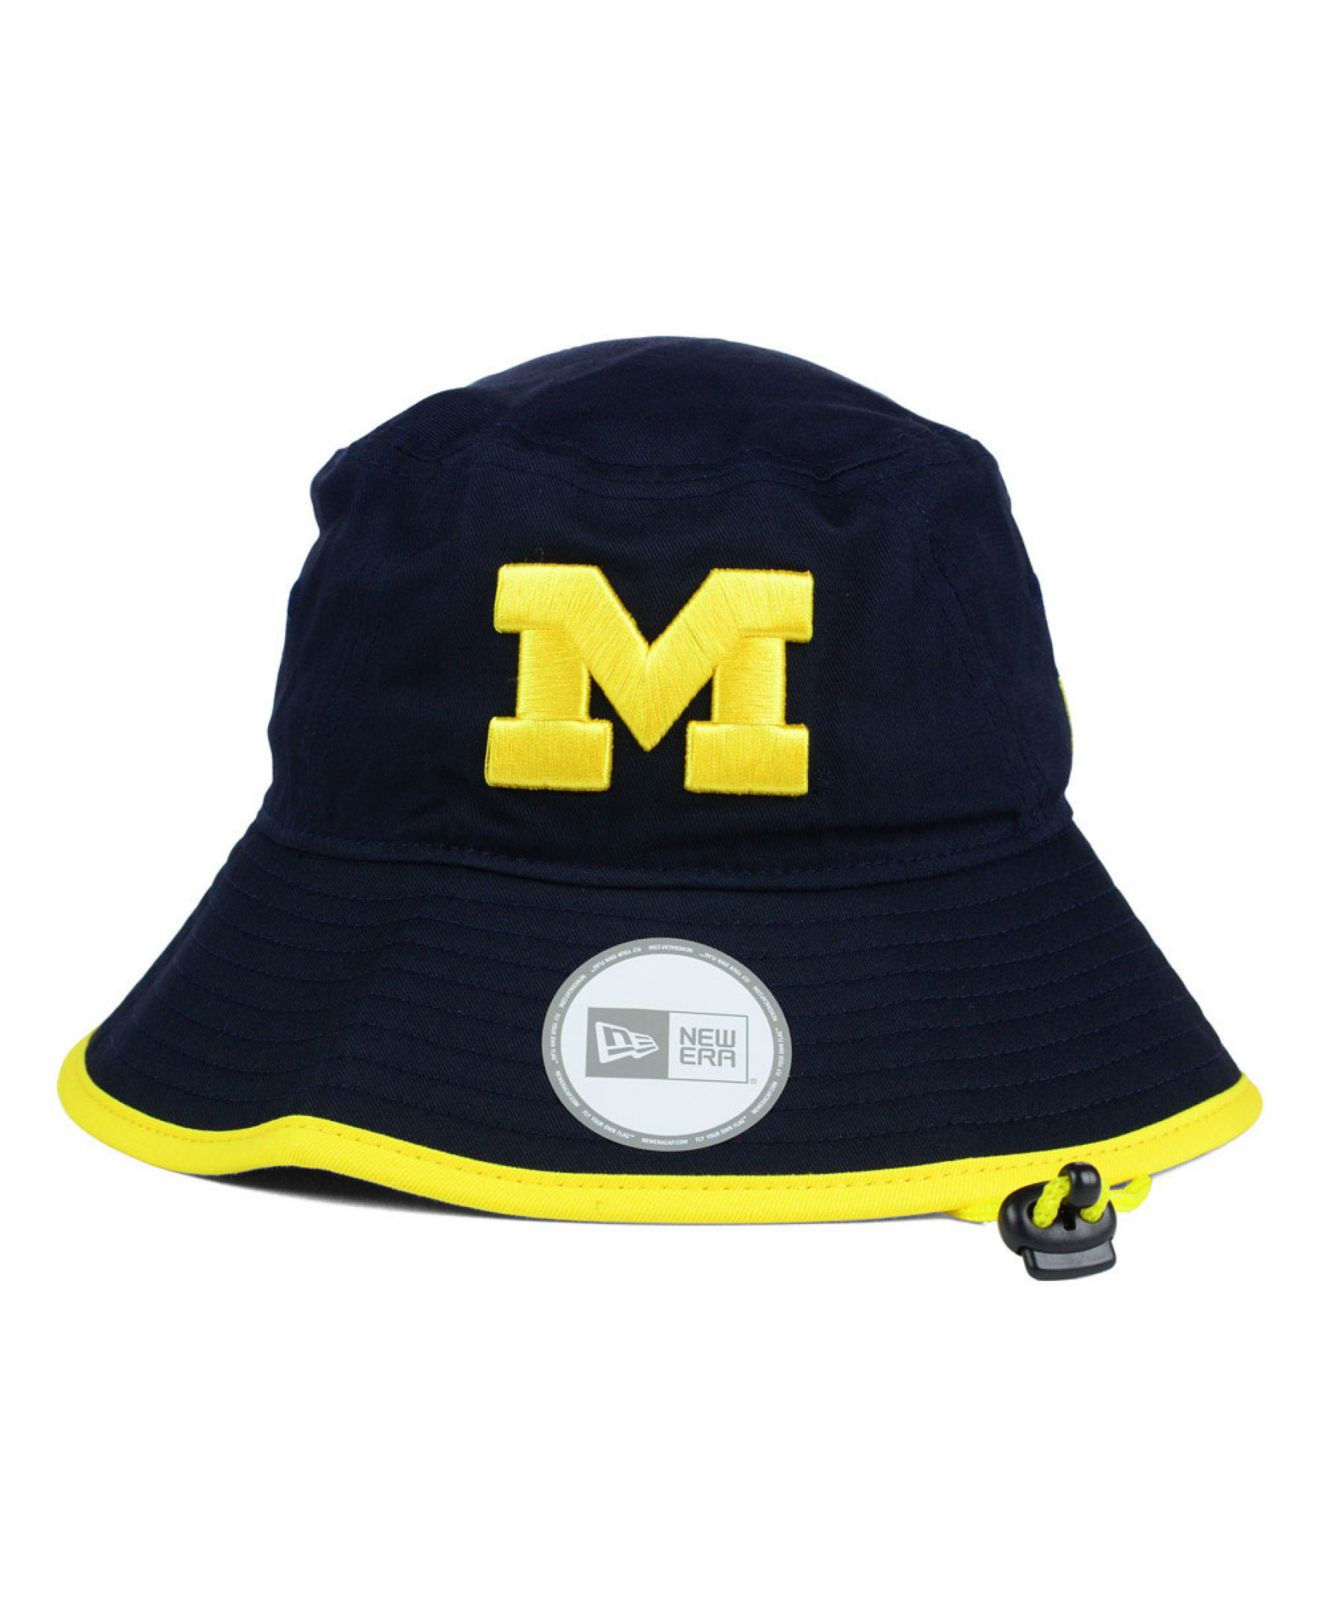 8c2bb48a8828e ... closeout spain lyst ktz michigan wolverines tip bucket hat in blue for  men 1f6f6 ce606 a6bc5